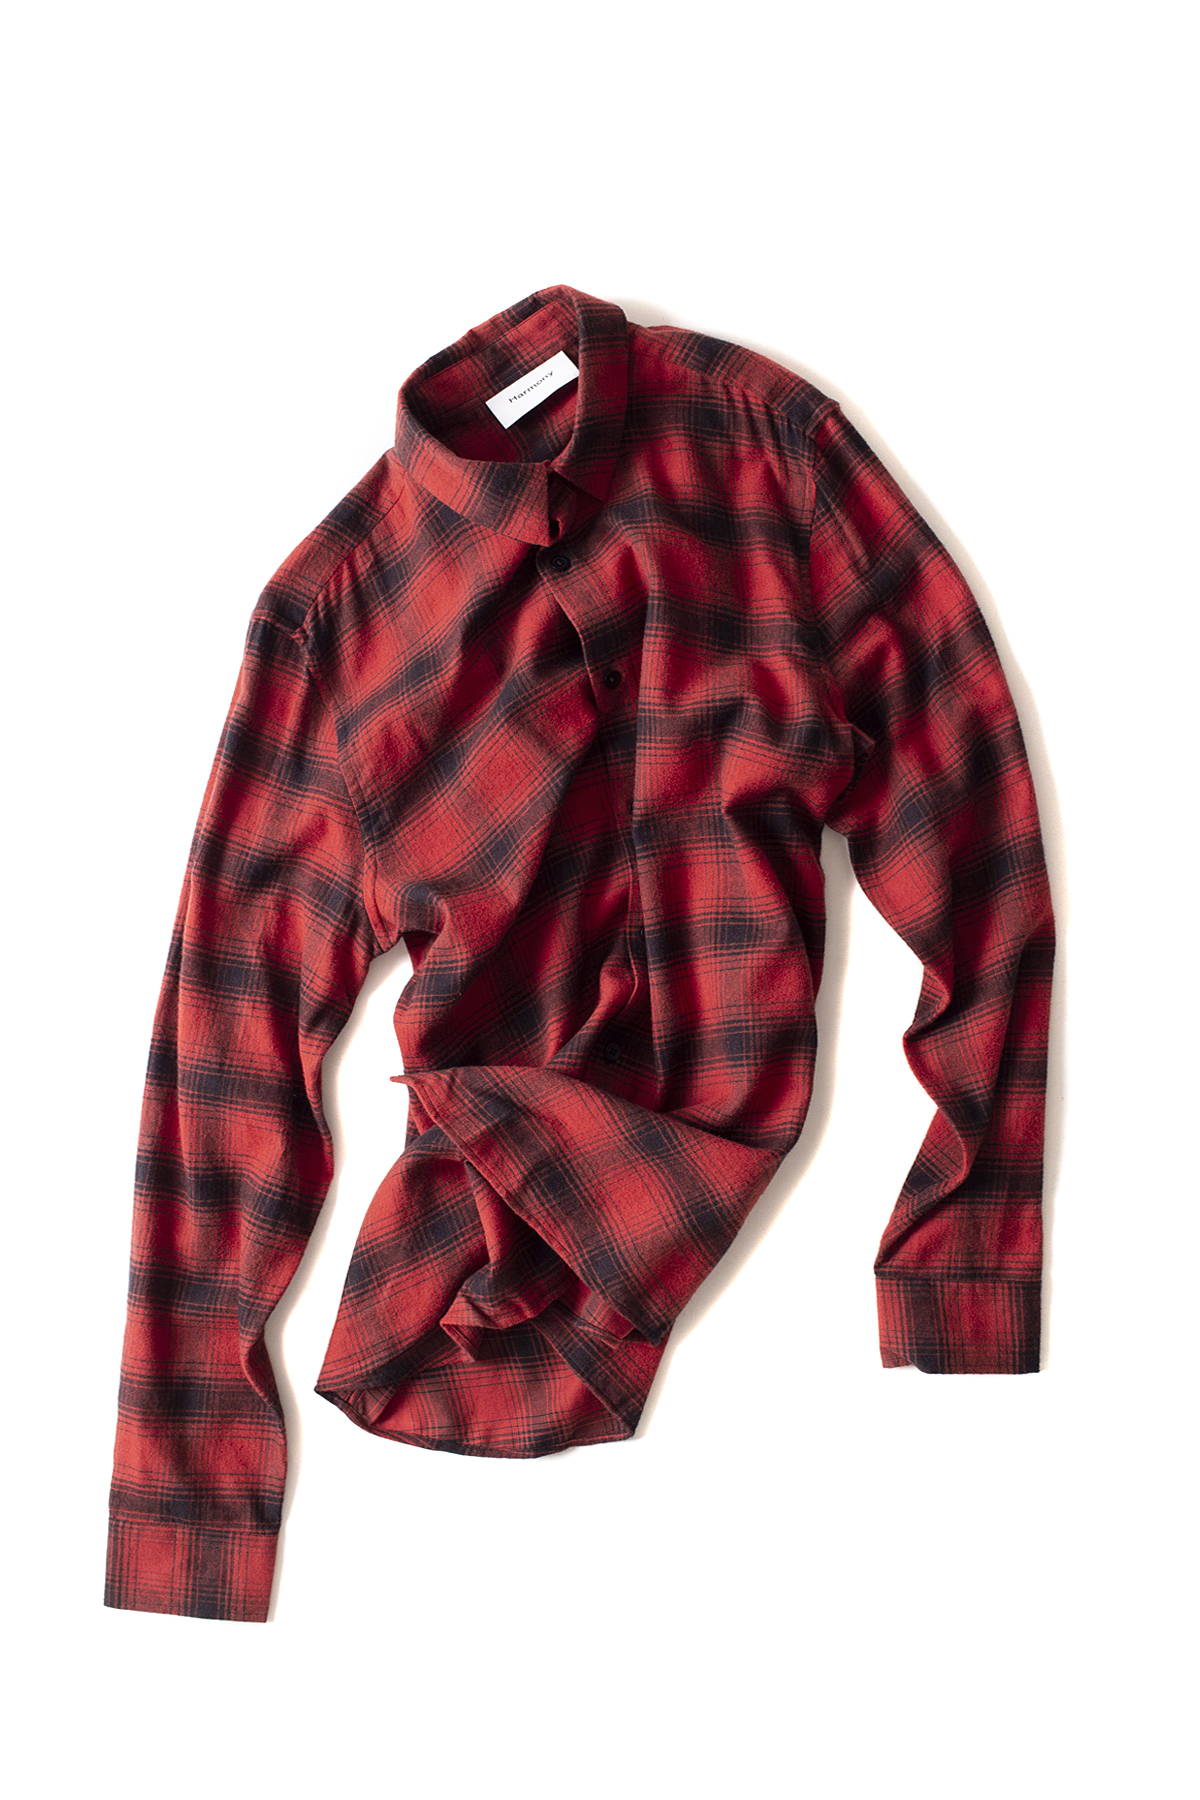 HARMONY : Caleb Shirt (Red)